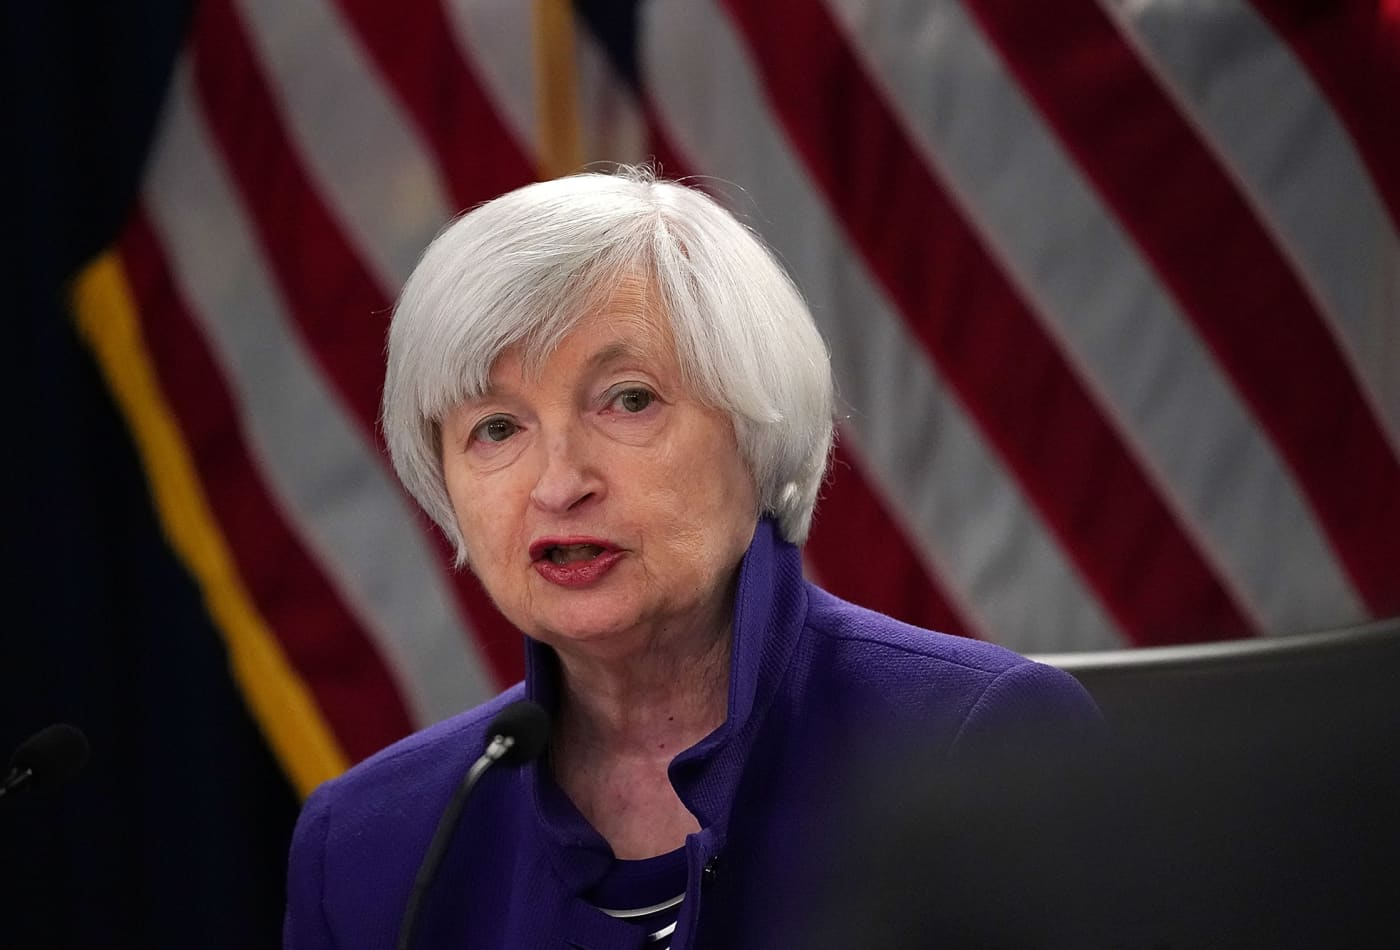 Yellen says the Fed doesn't need to buy equities now, but Congress should reconsider allowing it